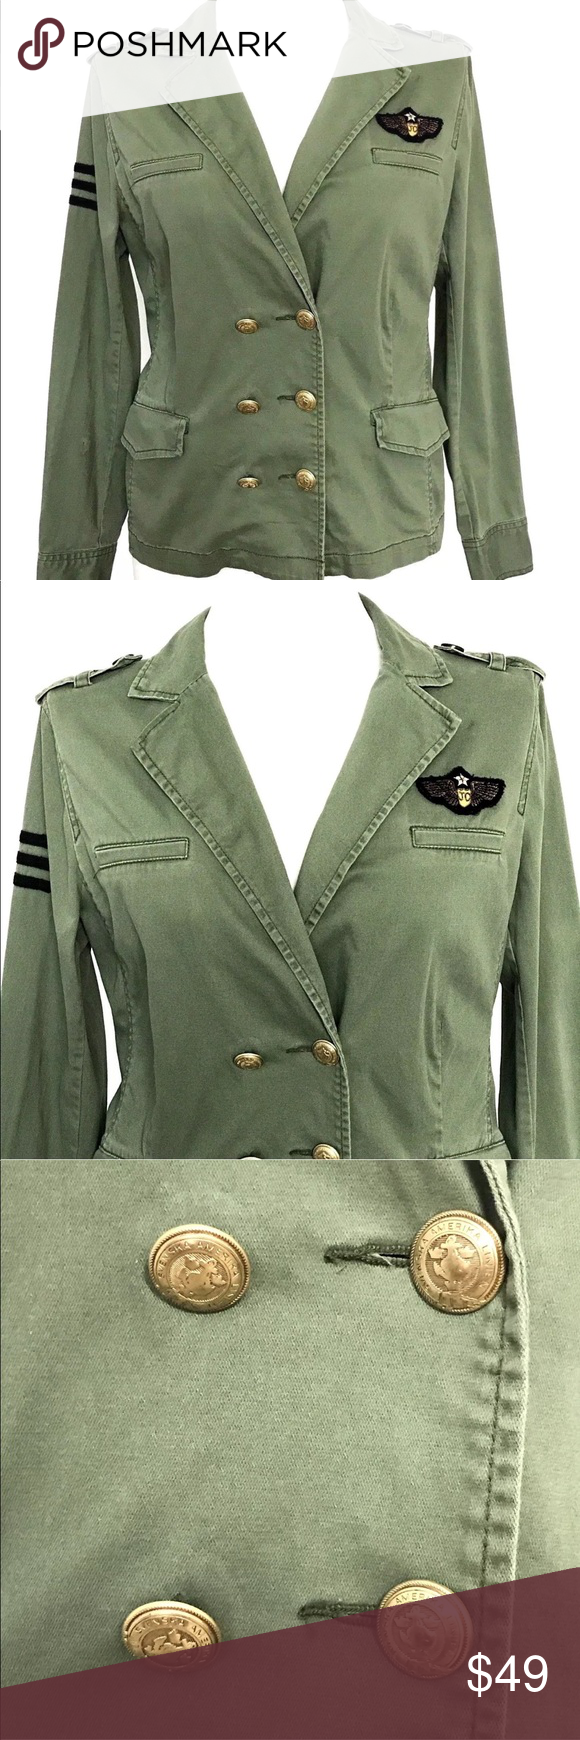 """CABI Sergeant Military Double Breasted Jacket CABI Sergeant Military Style Olive Green Double Breasted Jacket • Women's Size Medium • style no: 326, Double breasted Sergeant Jacket • Has a naturally worn look to it. Has sharpie inside above the tag. Otherwise in good preowned condition with normal signs of use. APPROXIMATE MEASUREMENTS Garment laying Flat: •CHEST pit to pit: 20.5"""" •SHOULDER TO SHOULDER: 18"""" •SLEEVE LENGTH Shoulder seam to cuff: 25"""" •WAIST: 18.5"""" •HIPS: 22"""" •LENGTH (Bottom of…"""